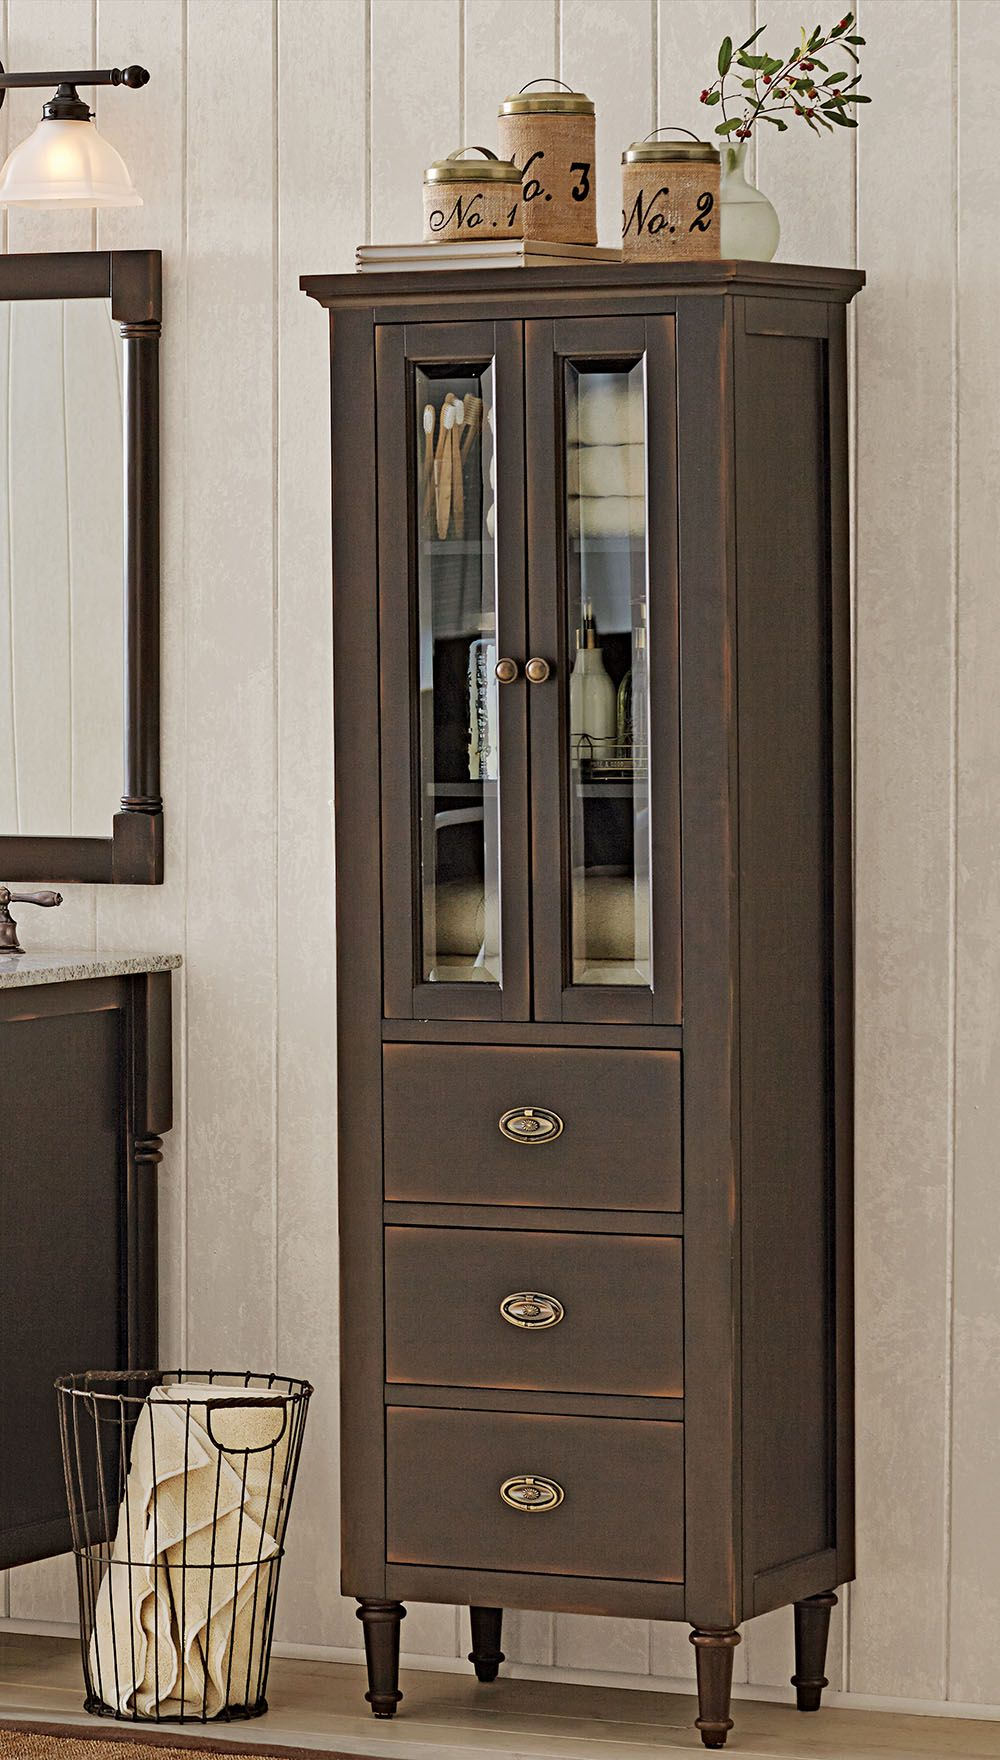 A Unique Linen Cabinet For All Your Toiletries Loving The Narrow Glass Windows Homedecorators